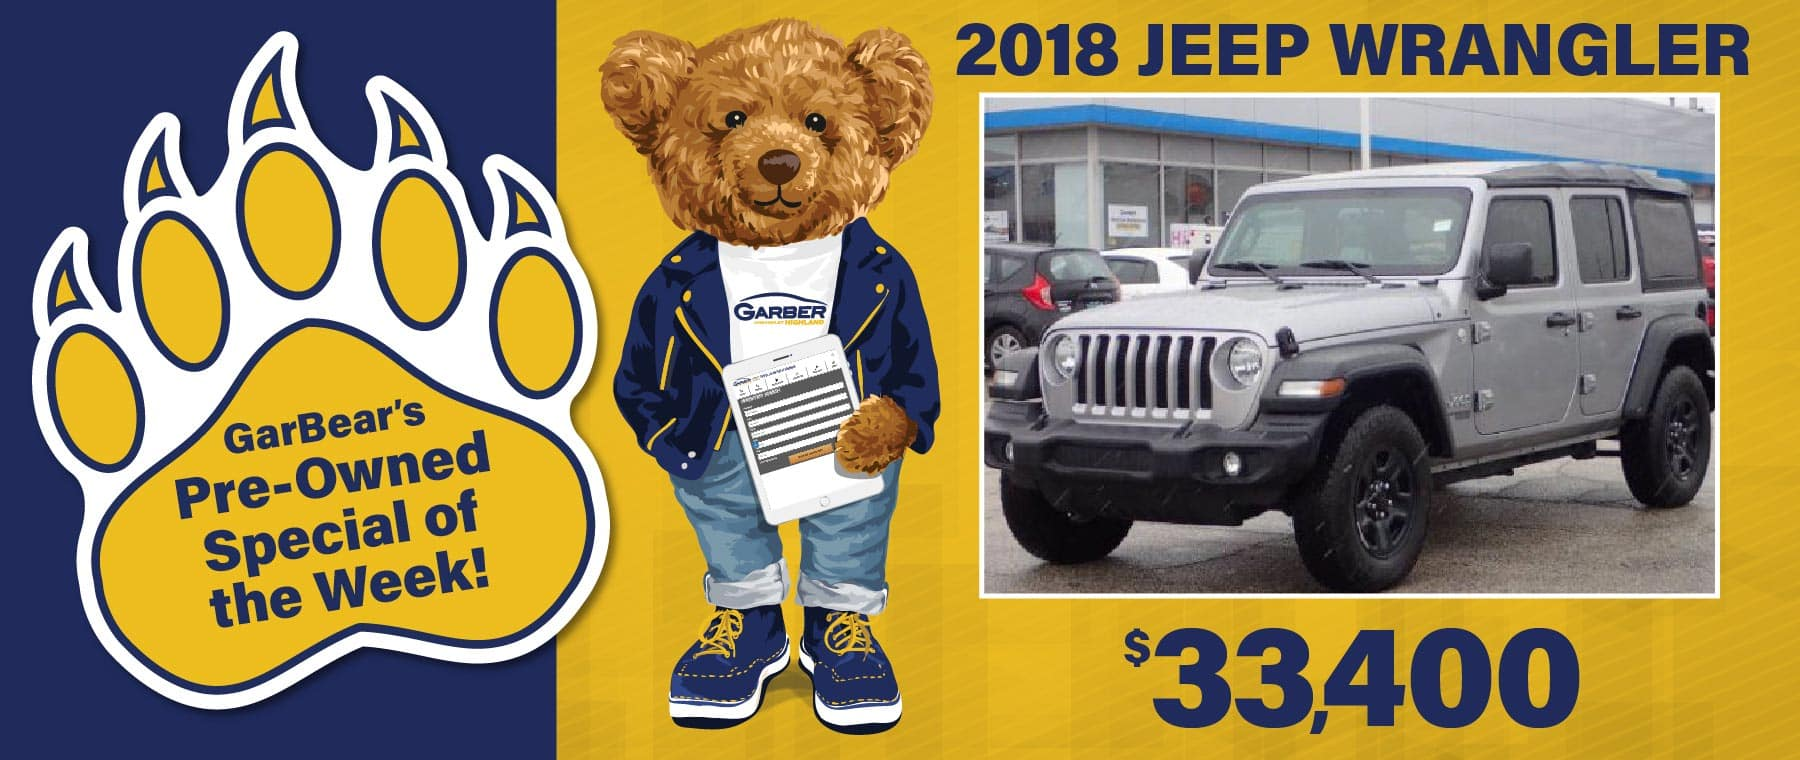 GarBear's Pre-owned Special of the Week! | 2018 Jeep Wrangler $33,400